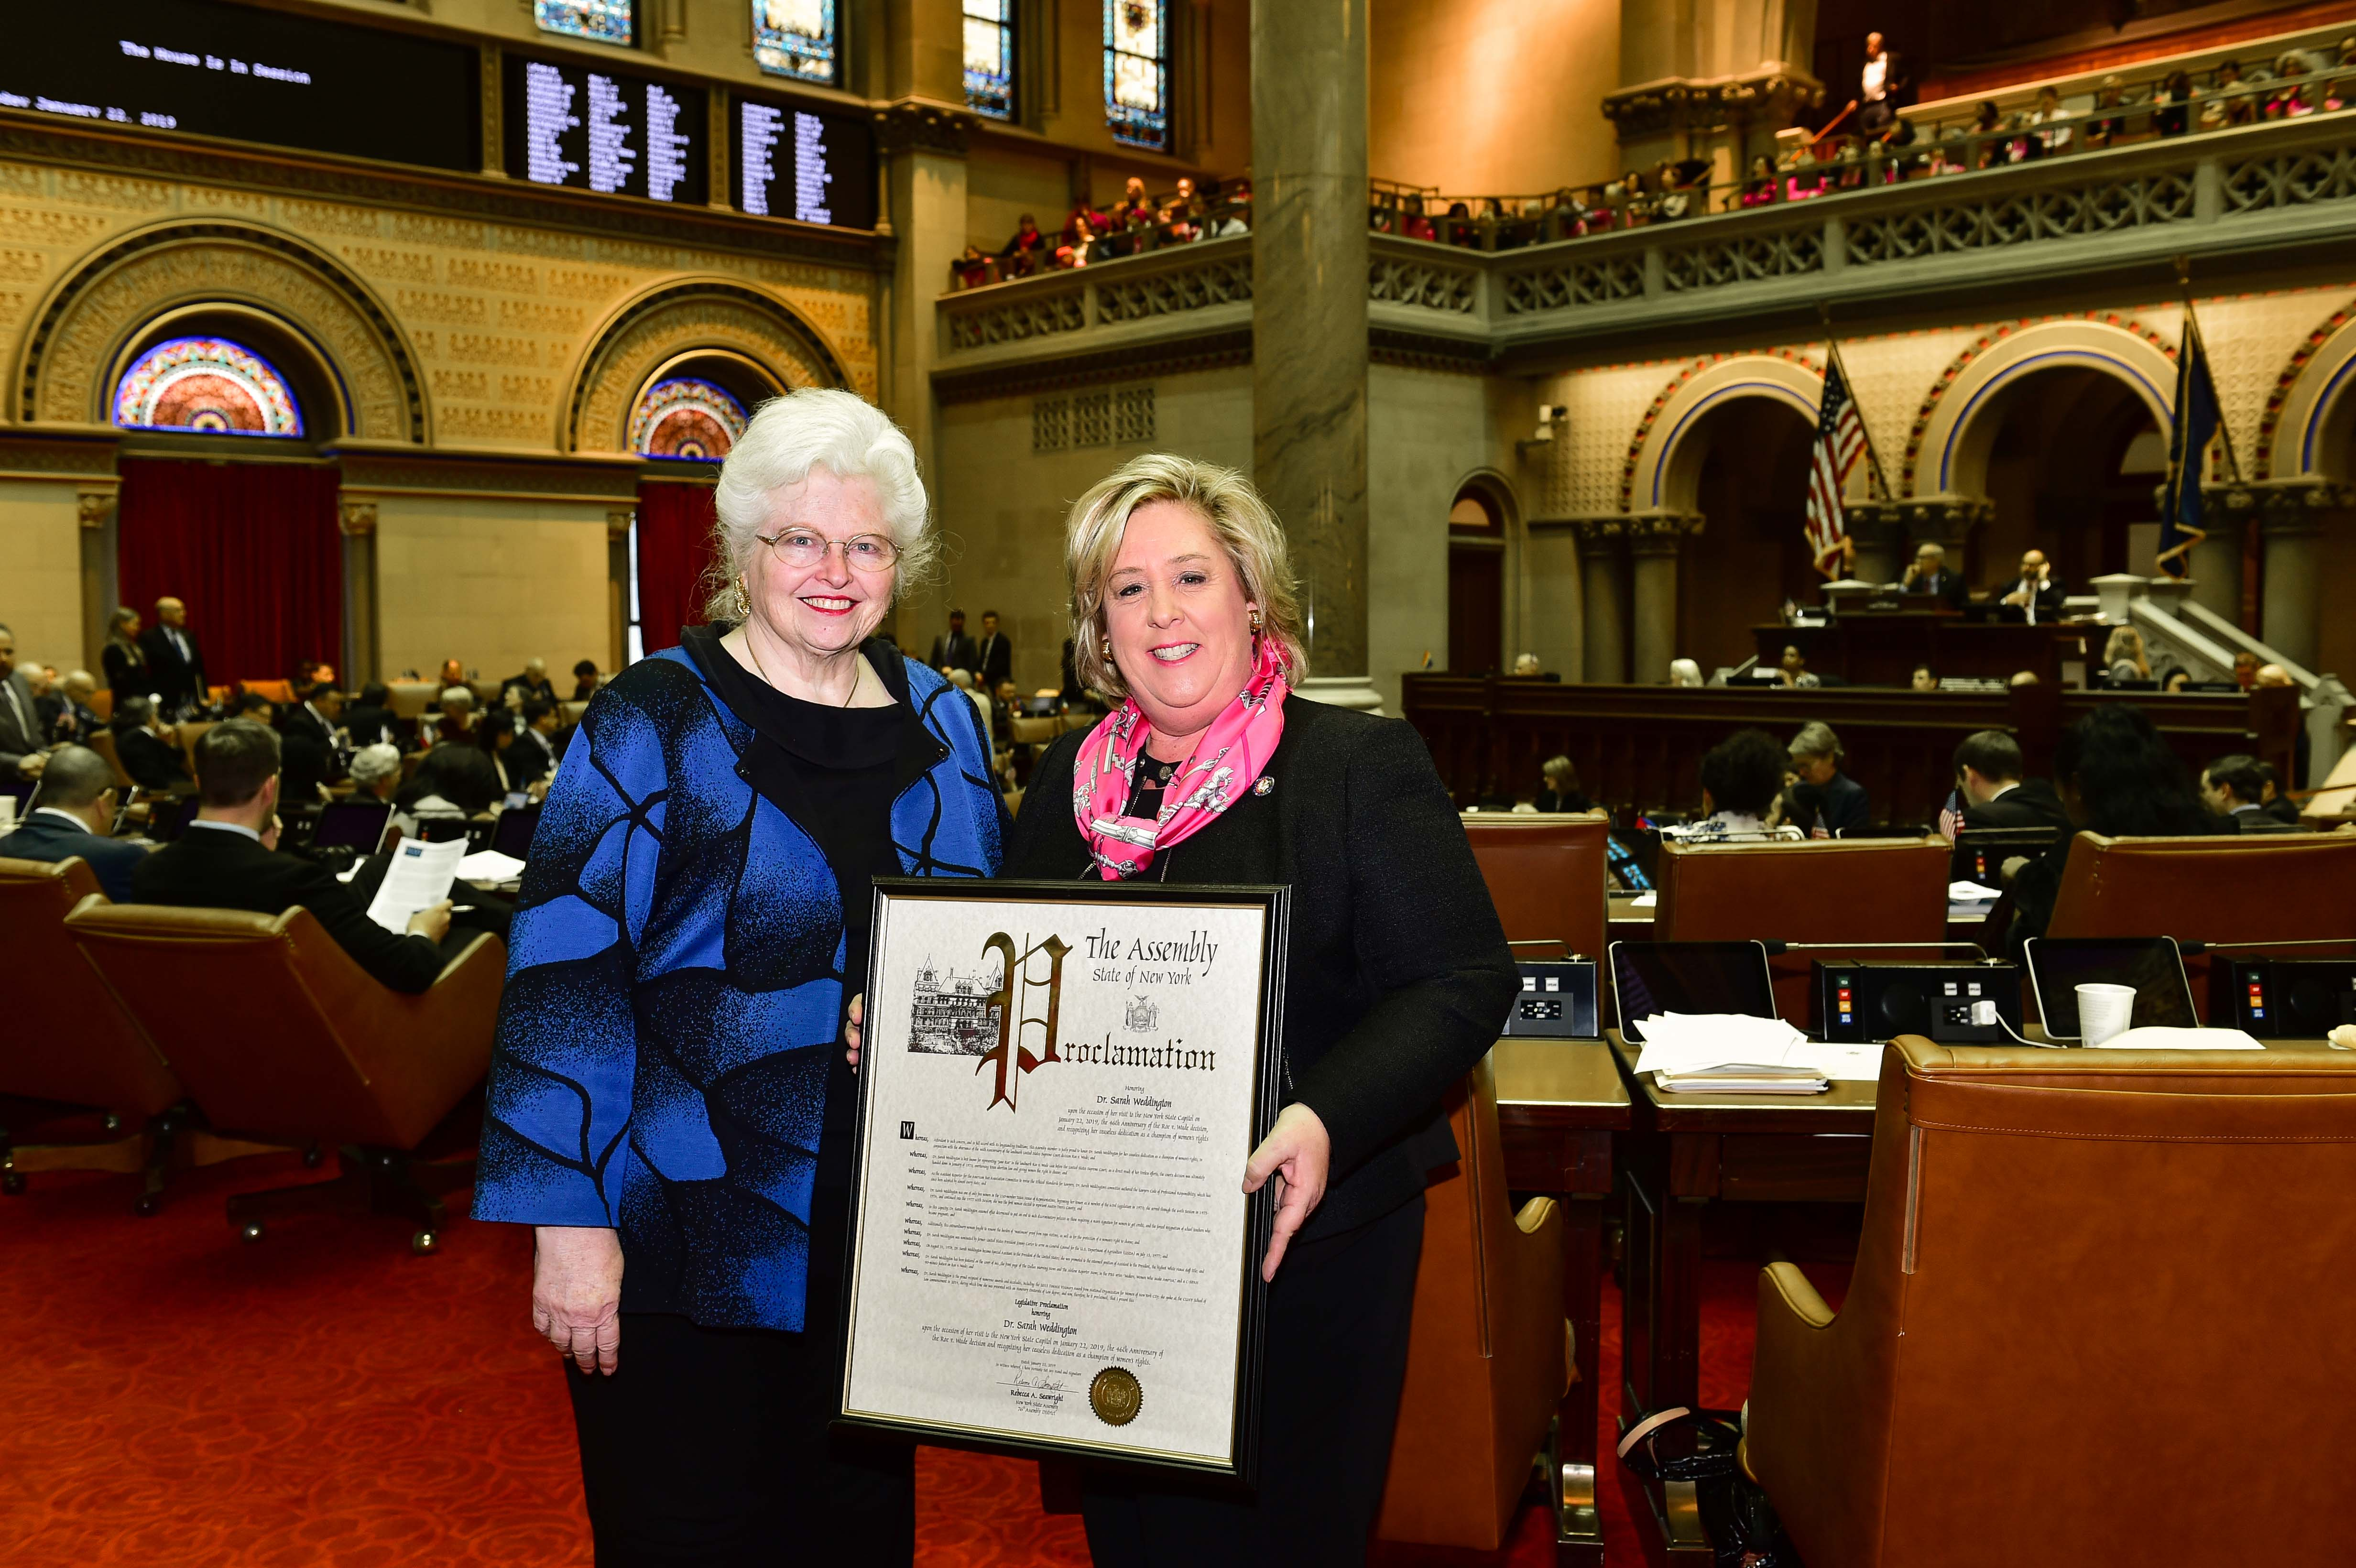 Seawright presents Dr. Sarah Weddington with a Legislative Resolution honoring her in the Assembly Chamber on the occasion of the 46th Anniversary of Roe v. Wade.